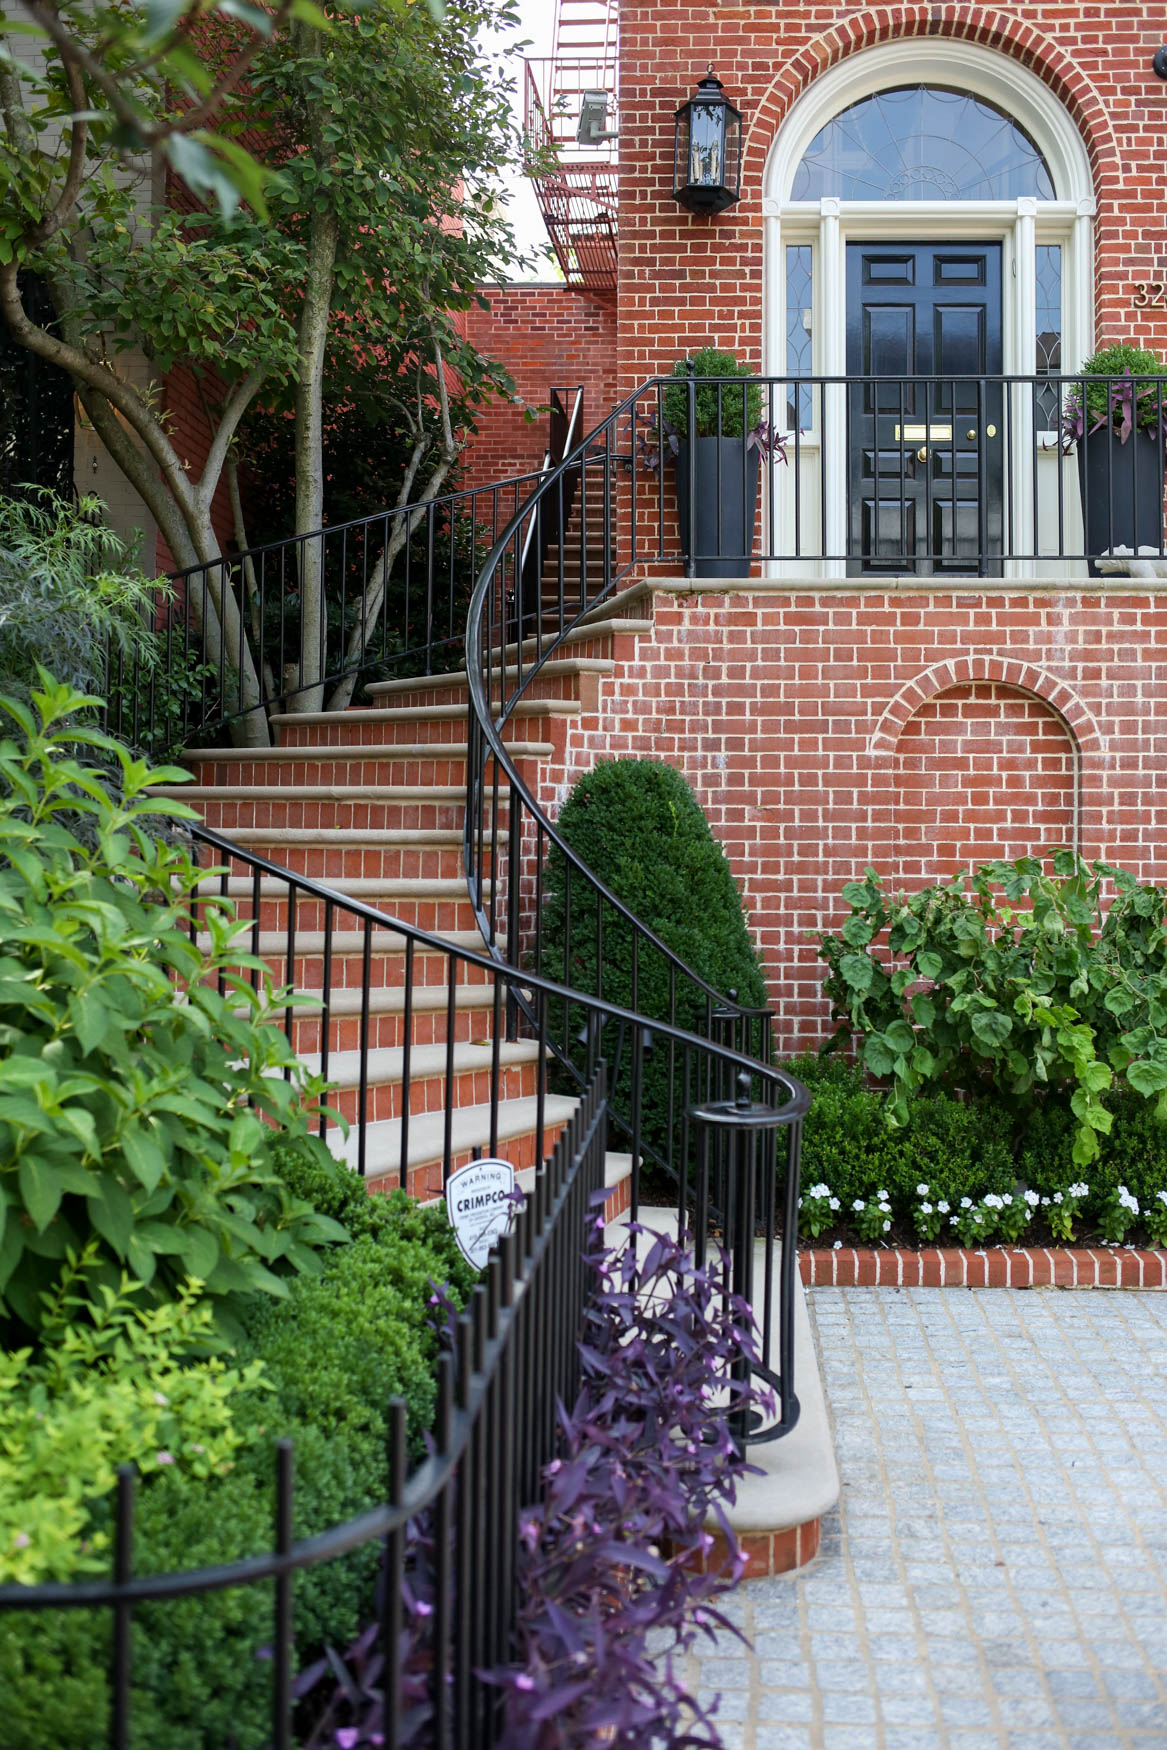 Georgetown has rested on the banks of the Potomac since 1751 and the houses are a testament to its old world sensibilities and glamour. Here are our favorite exteriors and details in this gorgeous neighborhood. (Amanda Andrade-Rhoades/DC Refined)